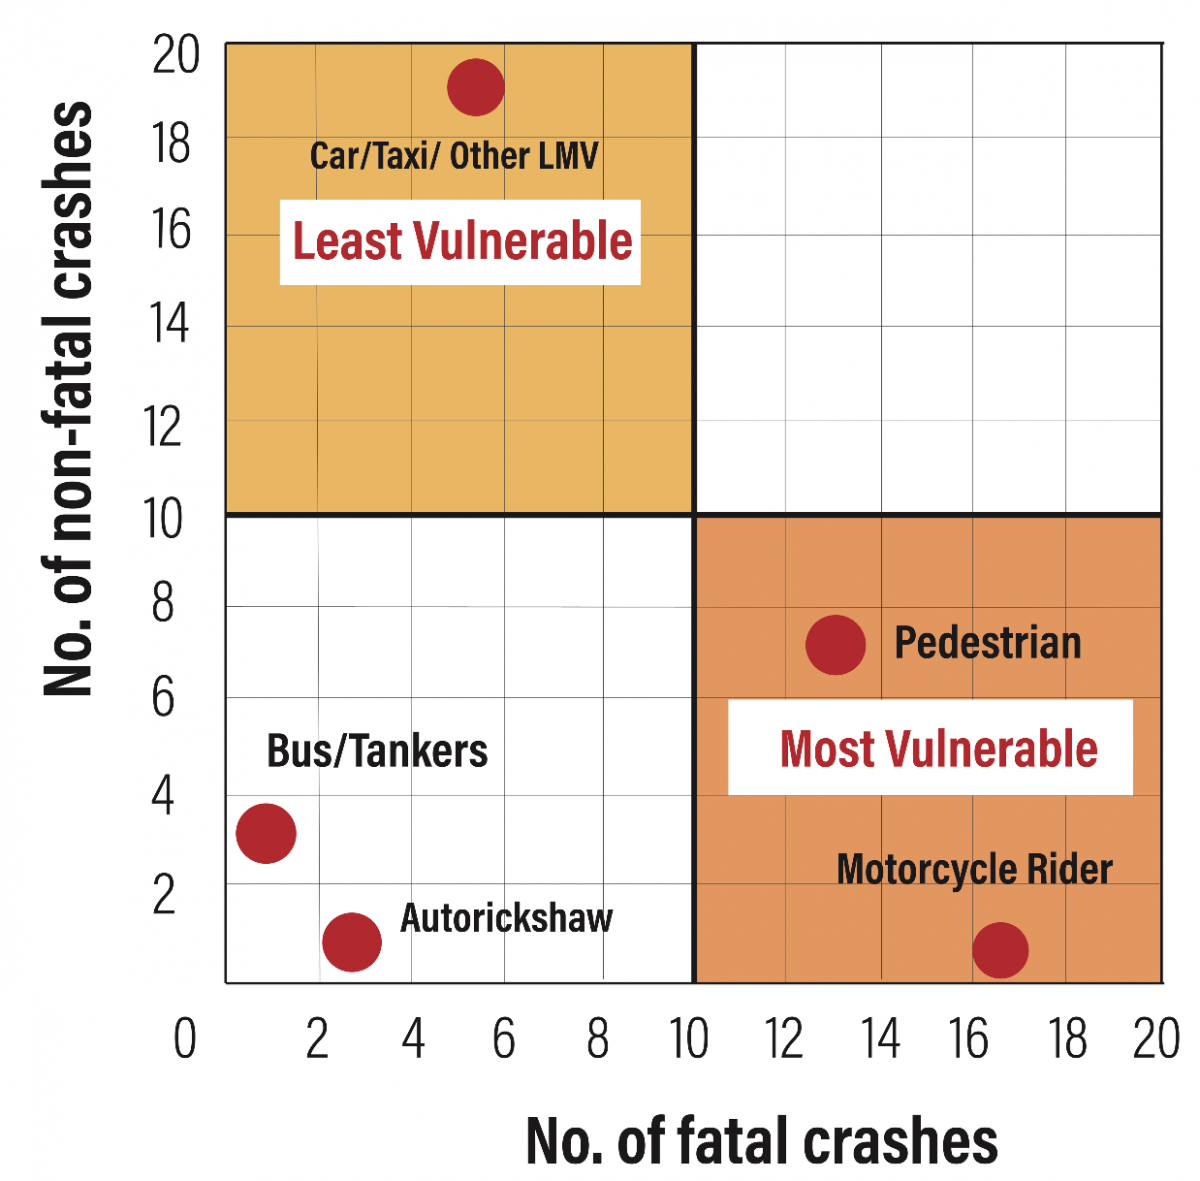 Vulnerability Matrix for Travel Modes